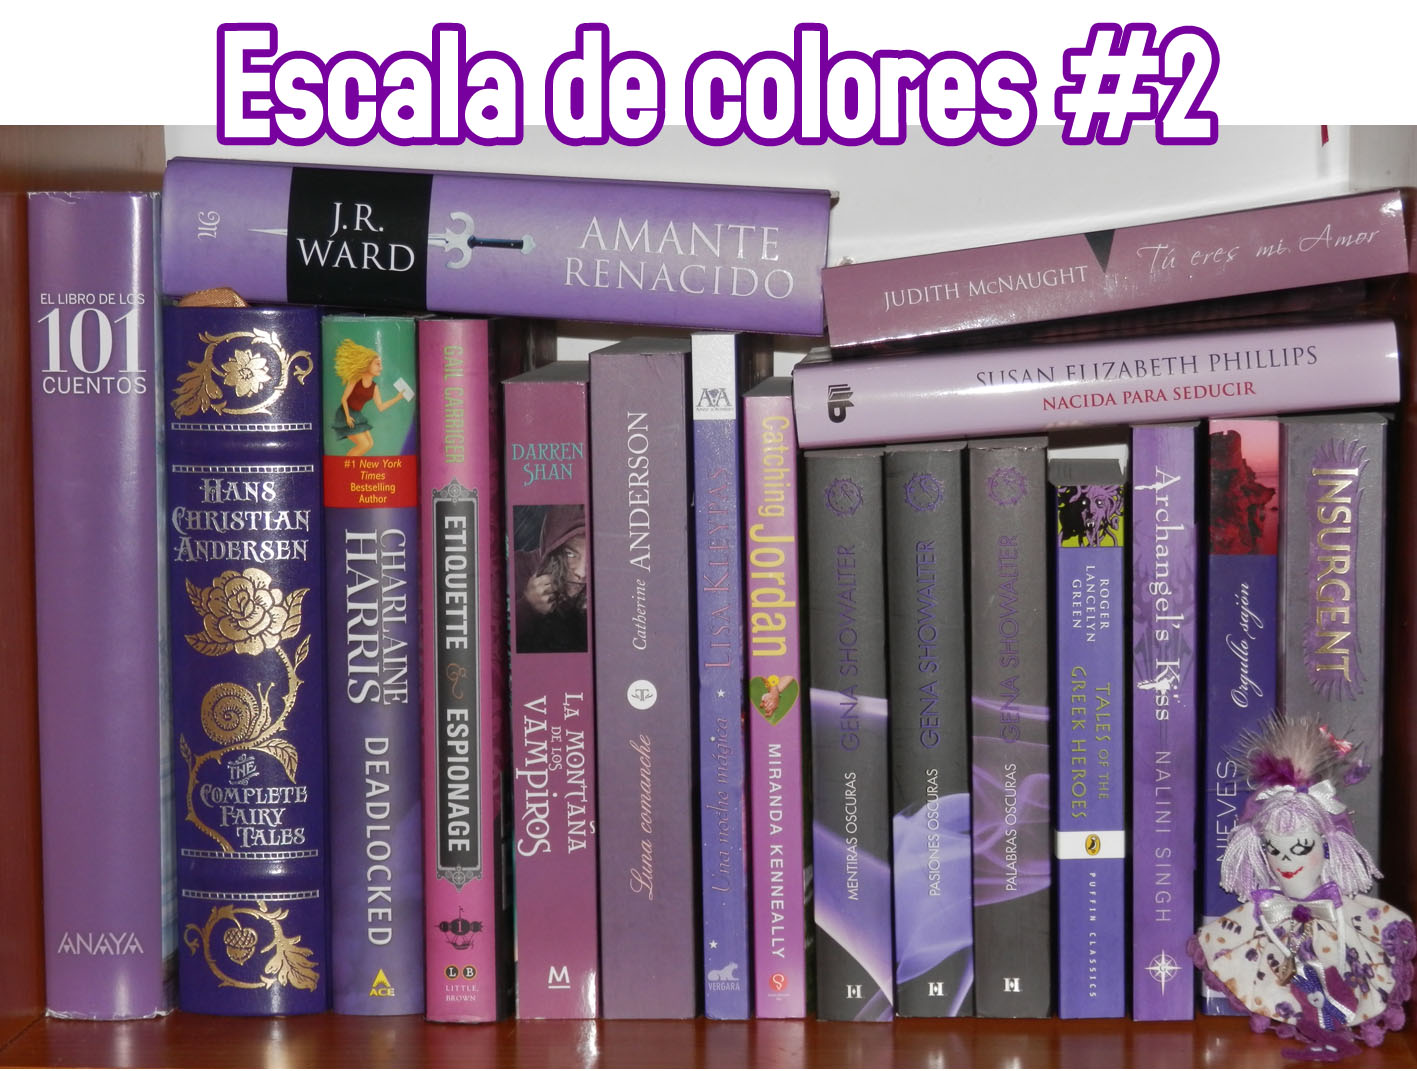 Book eater: Escala de colores 2: morado